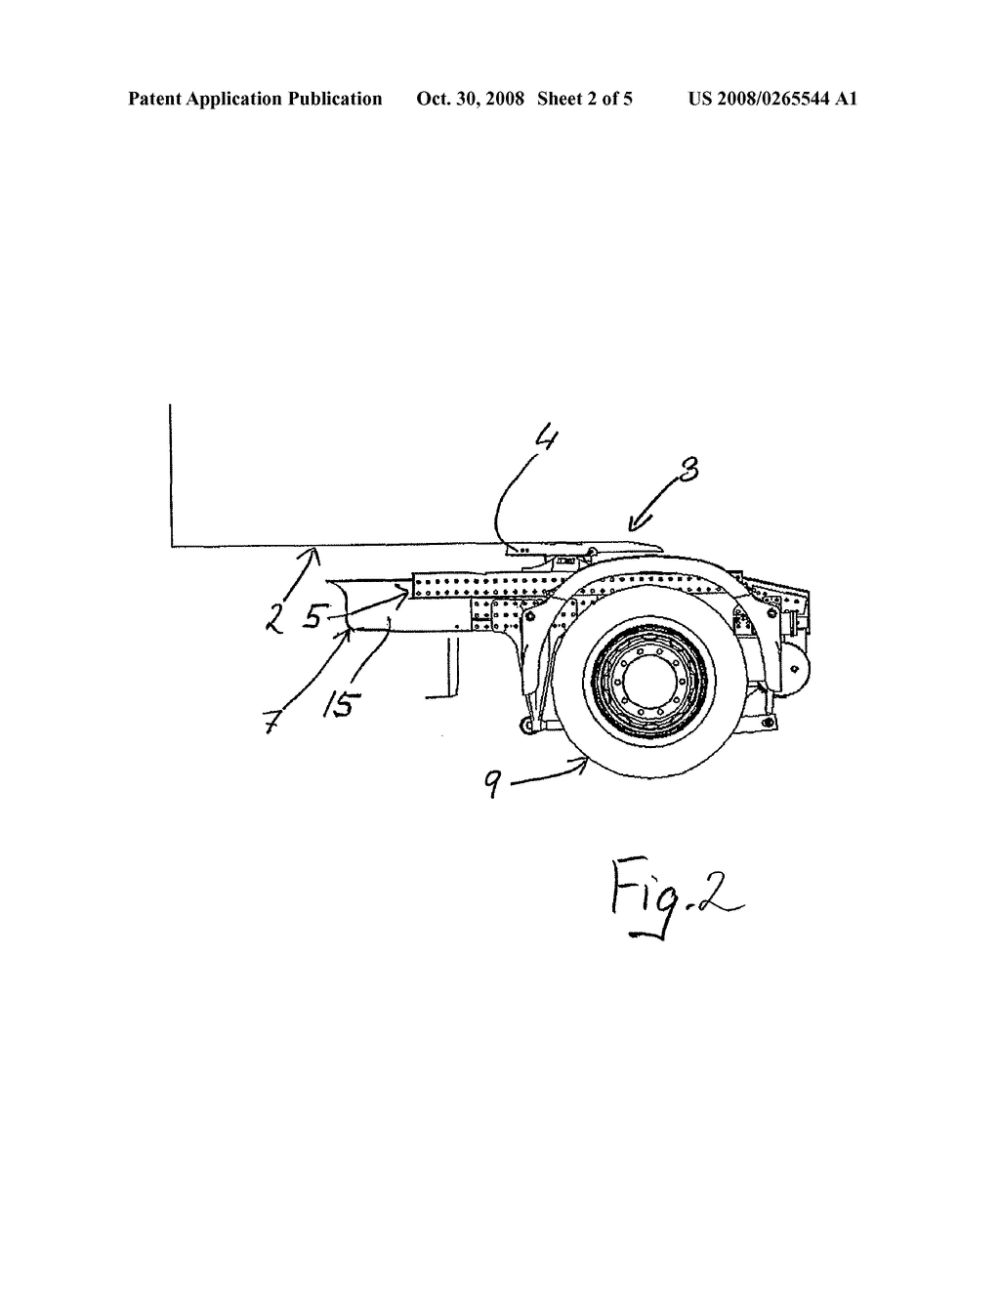 medium resolution of fifth wheel assembly for coupling a trailer to a truck tractor and a method for operating said assembly diagram schematic and image 03